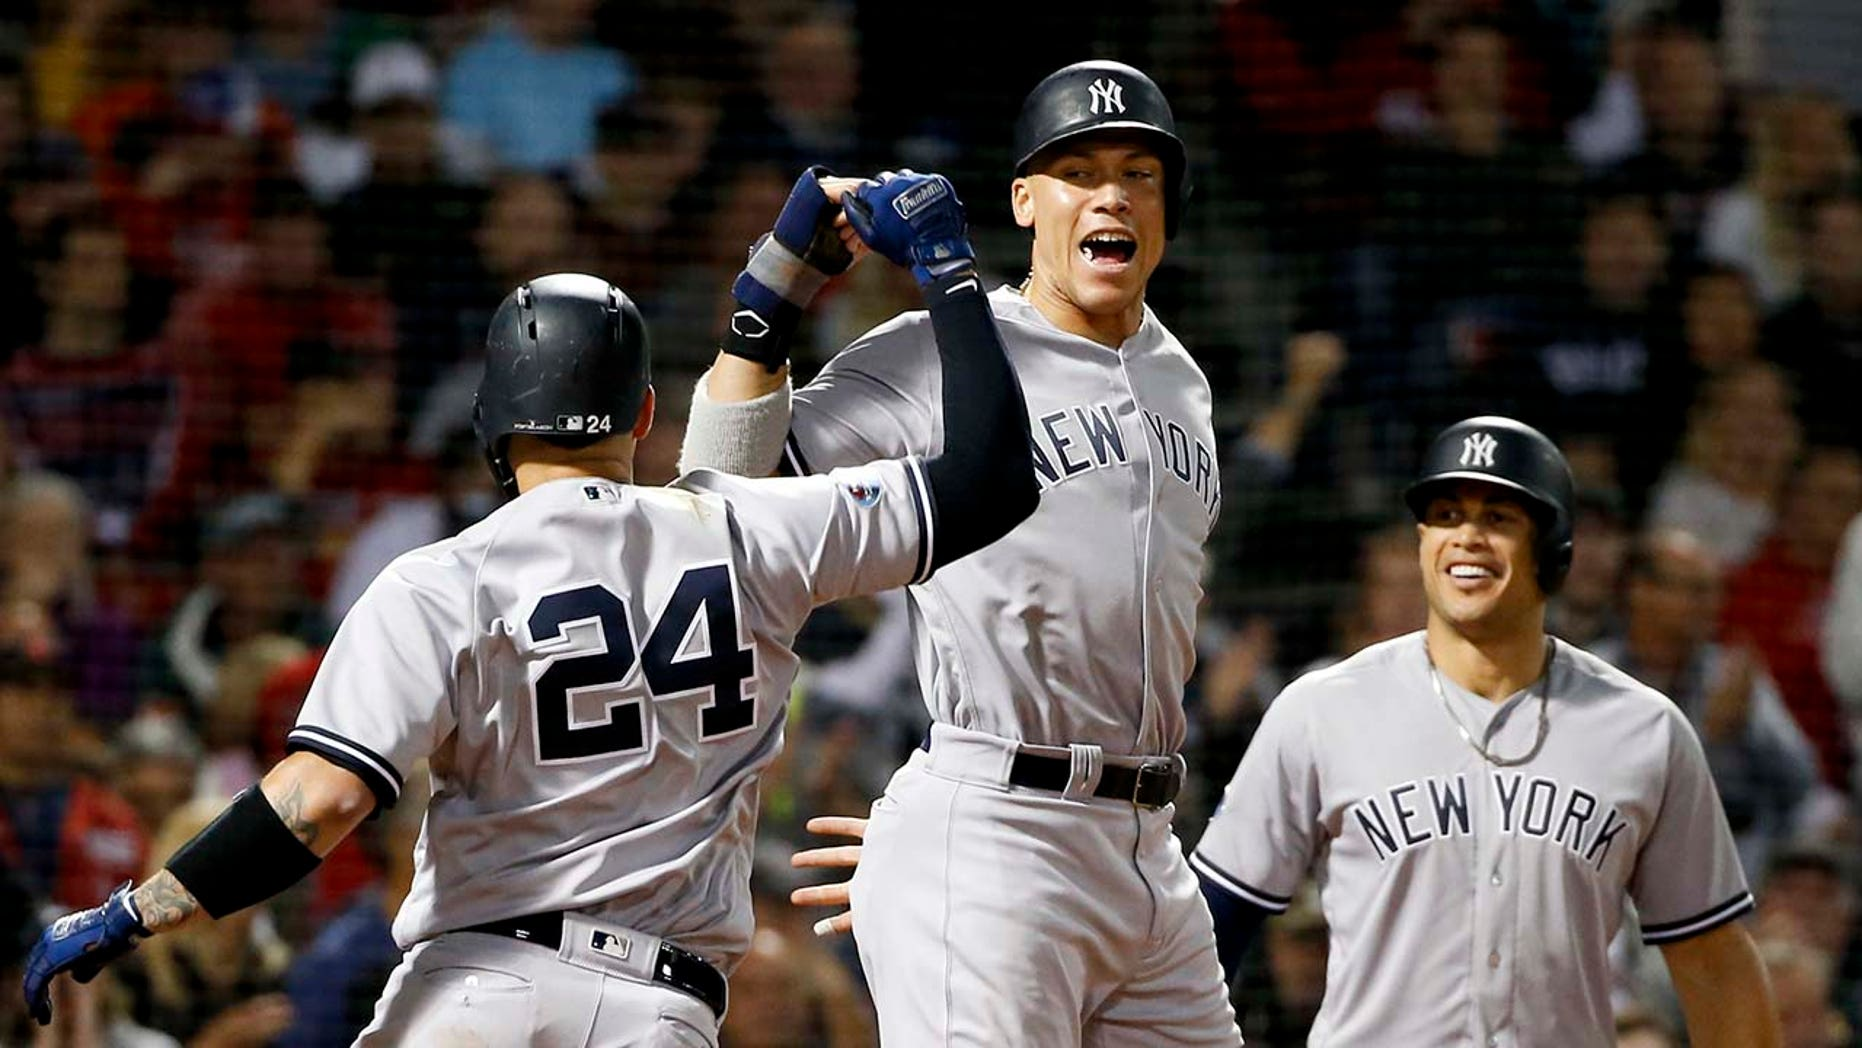 New York Yankees' Gary Sanchez, left, celebrates after his three-run home run against the Boston Red Sox with Aaron Judge and Giancarlo Stanton during the seventh inning of Game 2 of a baseball American League Division Series, Saturday, Oct. 6, 2018, in Boston. (Associated Press)